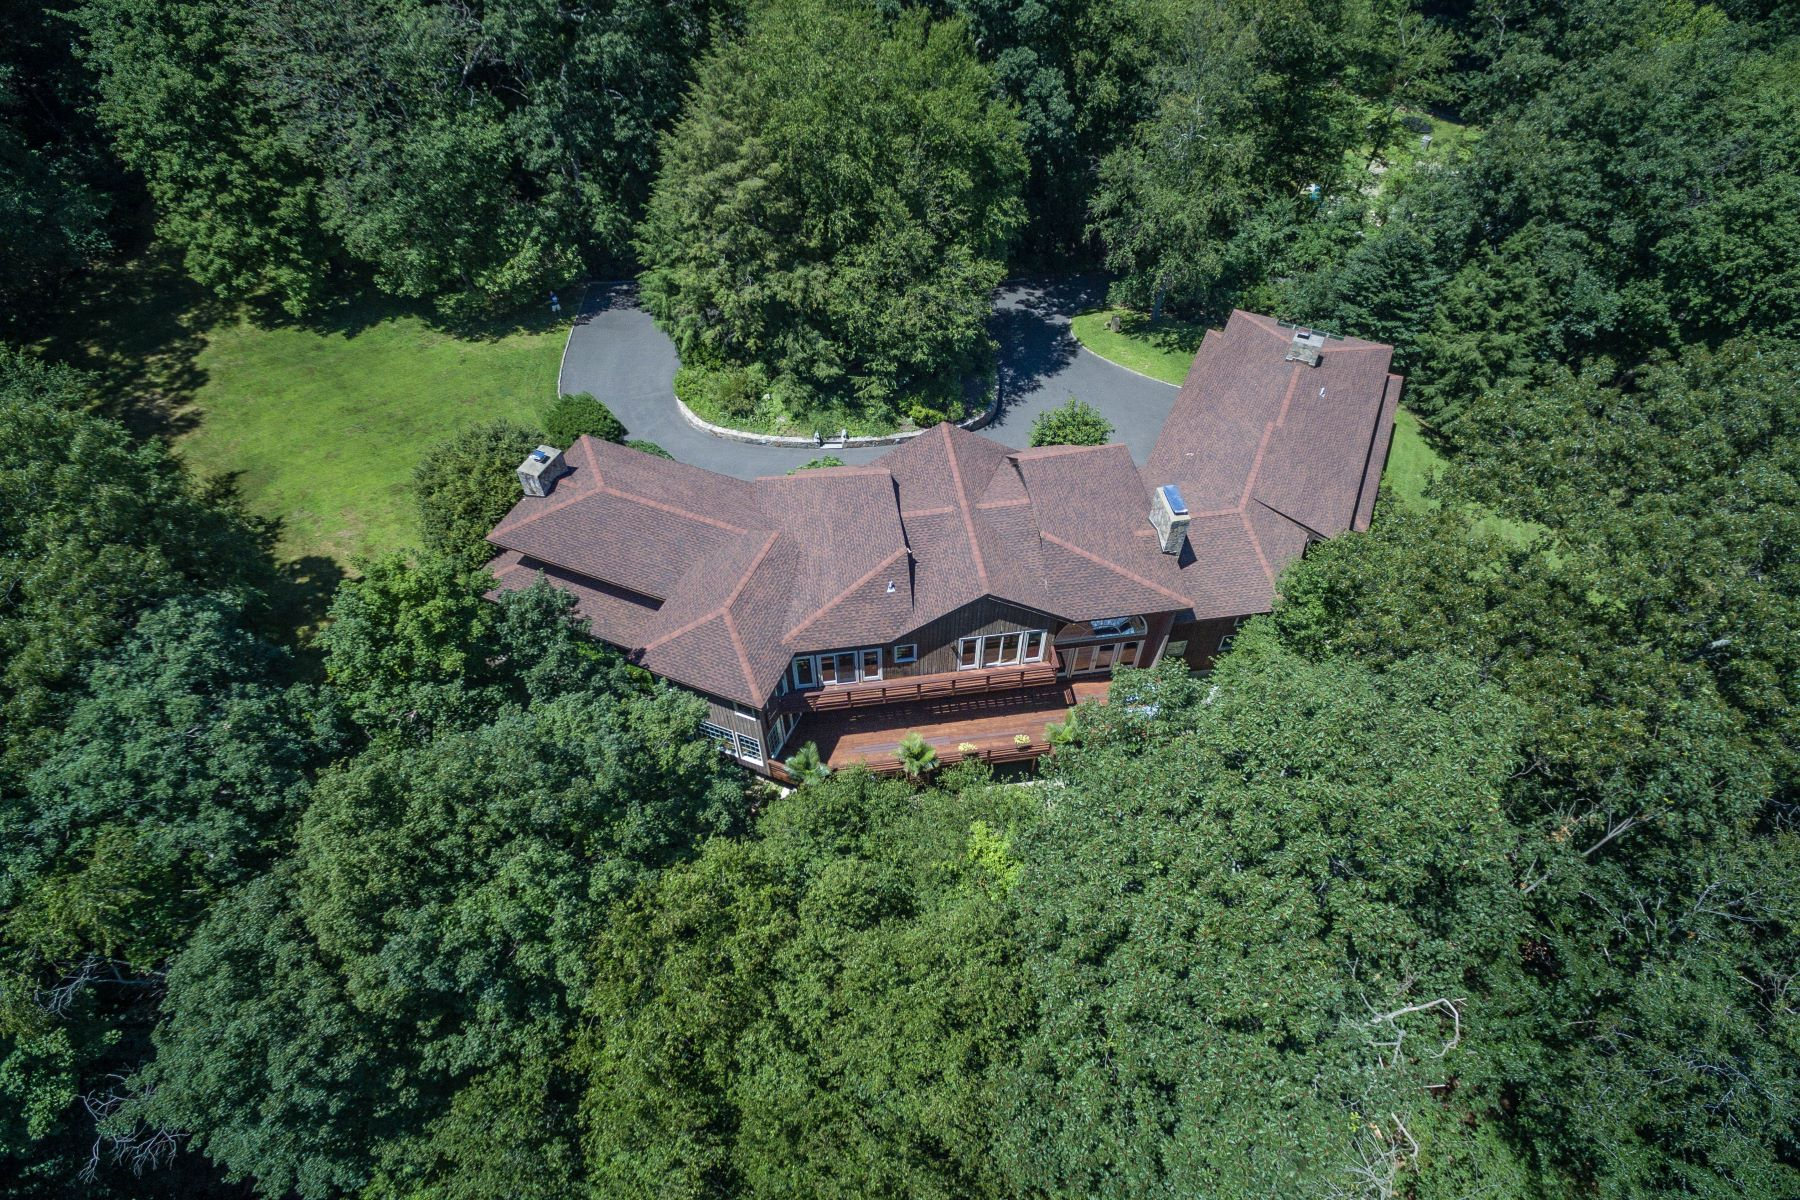 Single Family Homes for Sale at Dramatic Architectural Masterpiece 200 Steep Hill Road Weston, Connecticut 06883 United States